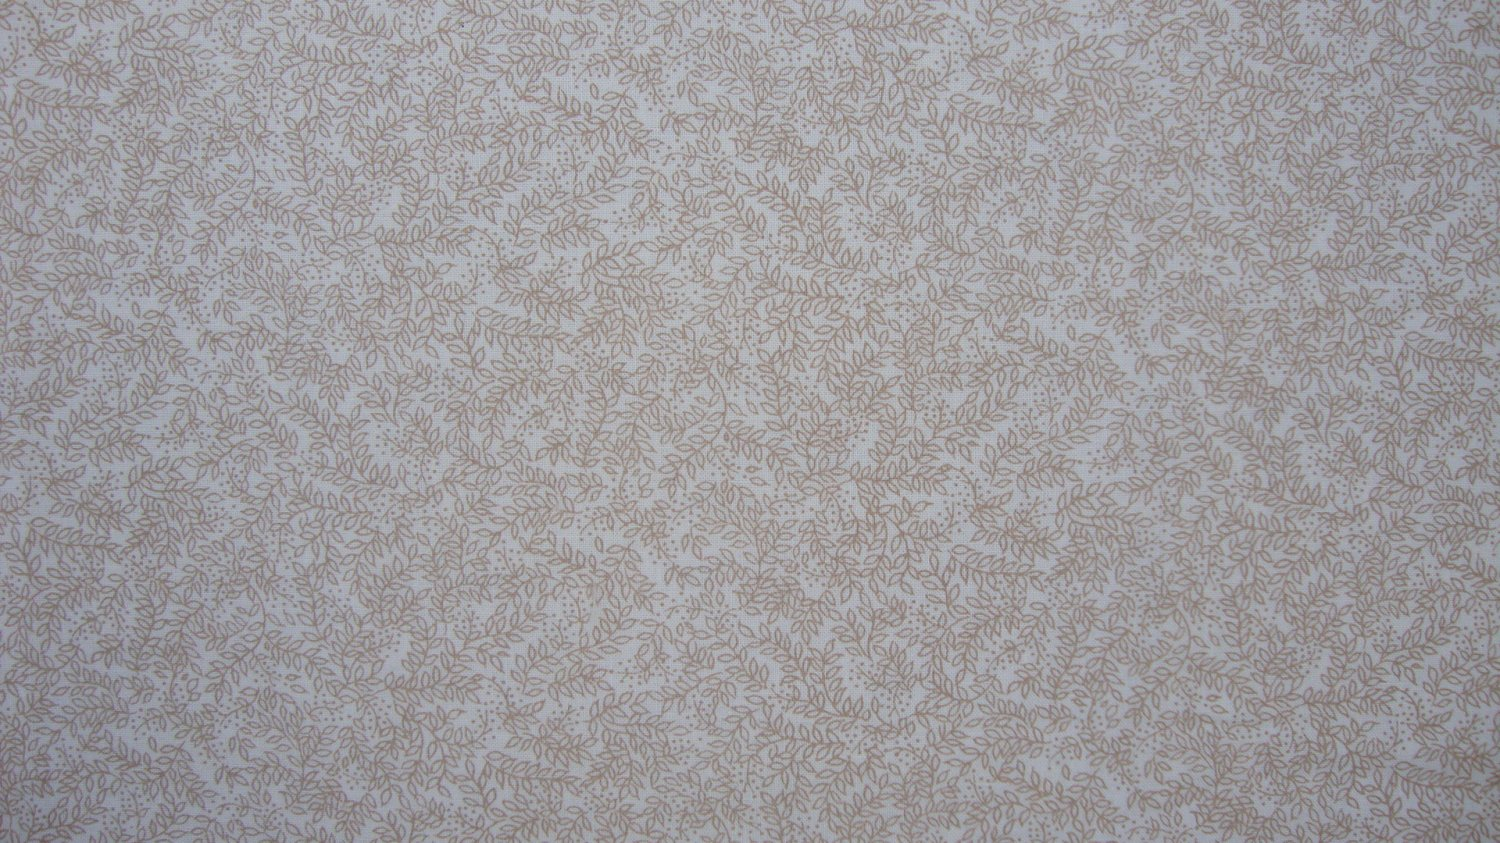 3/4 Yard Tan Feathery Leaves Allover on Cream Cotton Fabric Bolt End